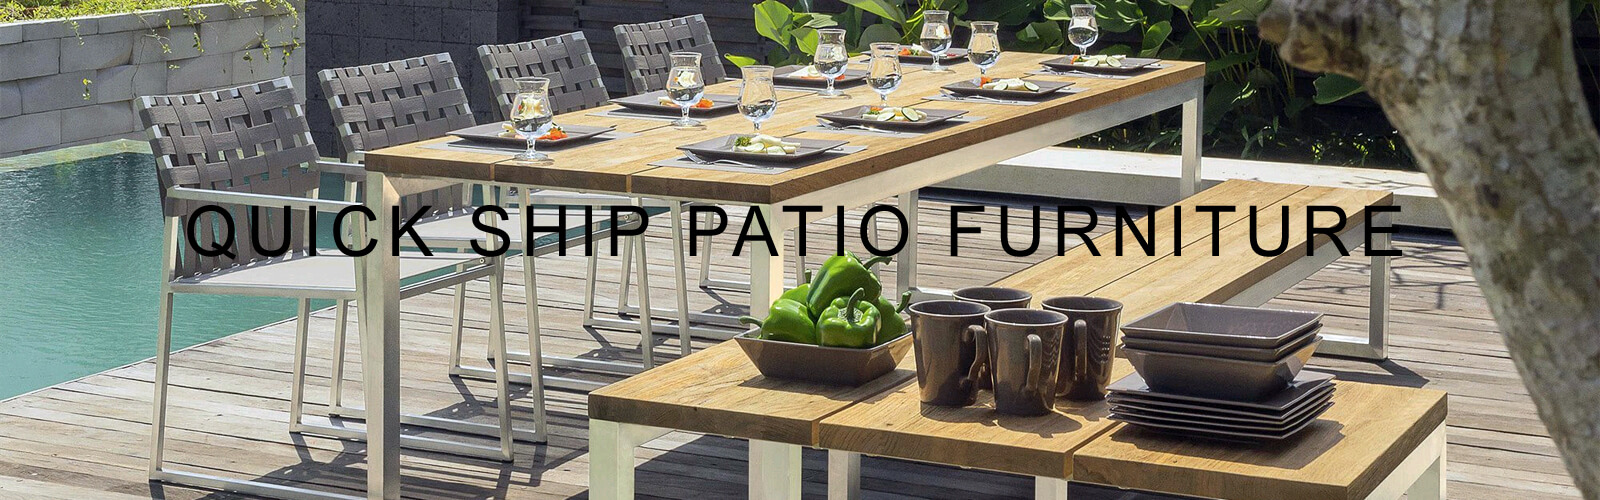 Quick Ship Patio Furniture